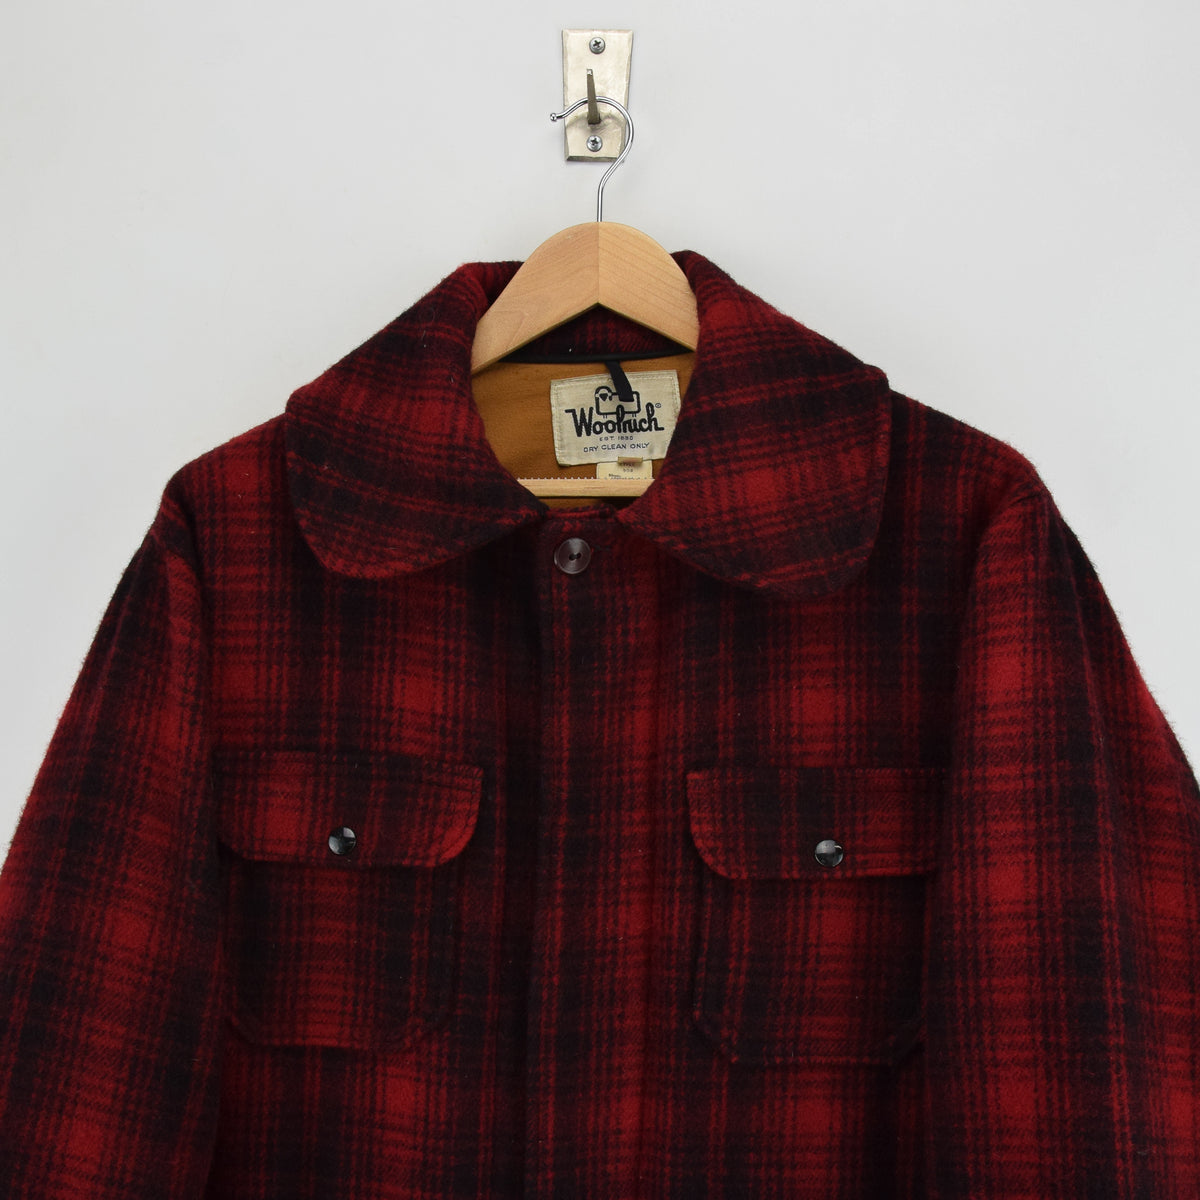 Vintage 70s Woolrich Buffalo Plaid Mackinaw Hunting Cruiser Jacket Made in USA L chest